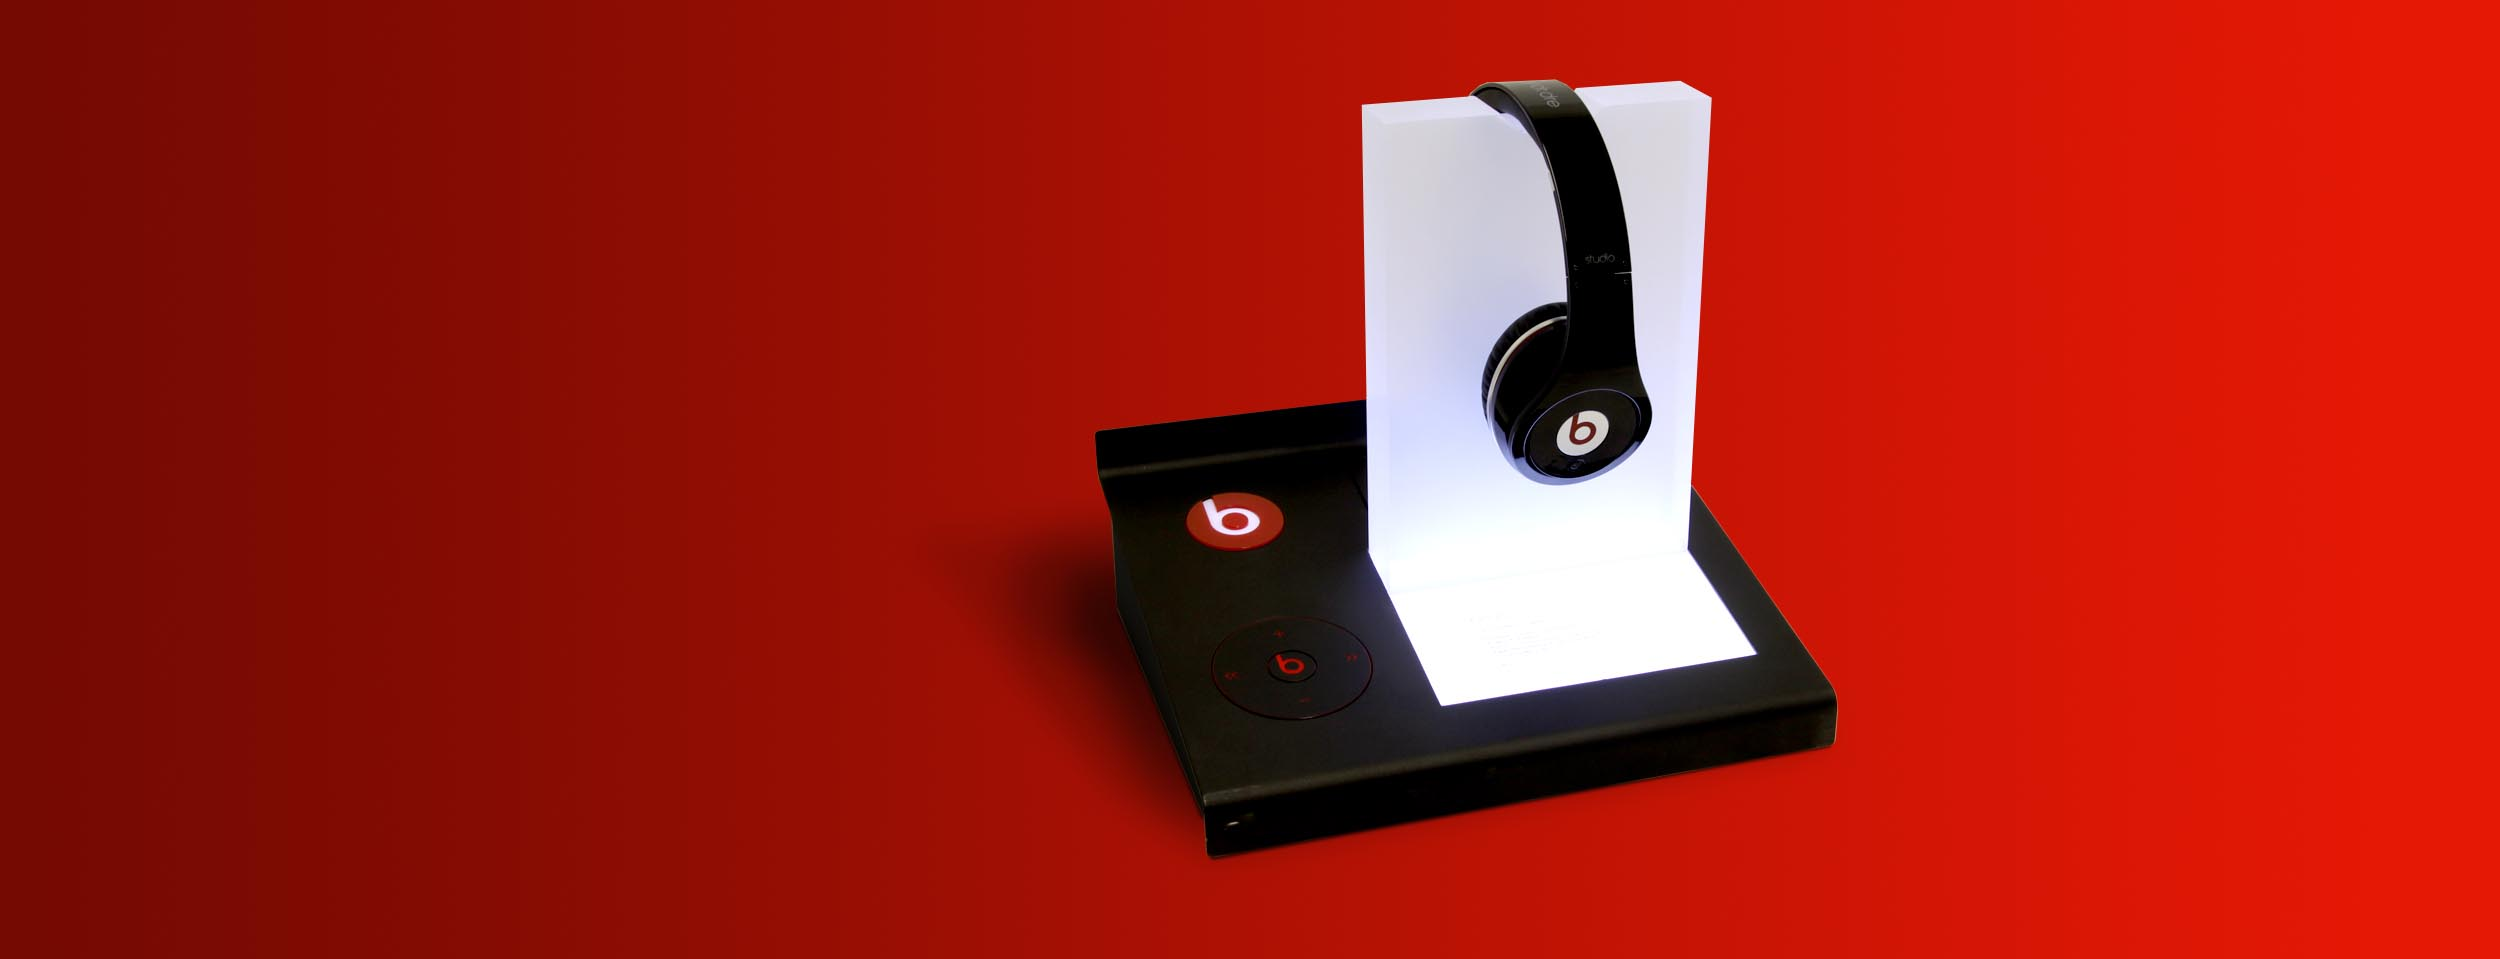 Beats by Dre Dre Display Stand 3